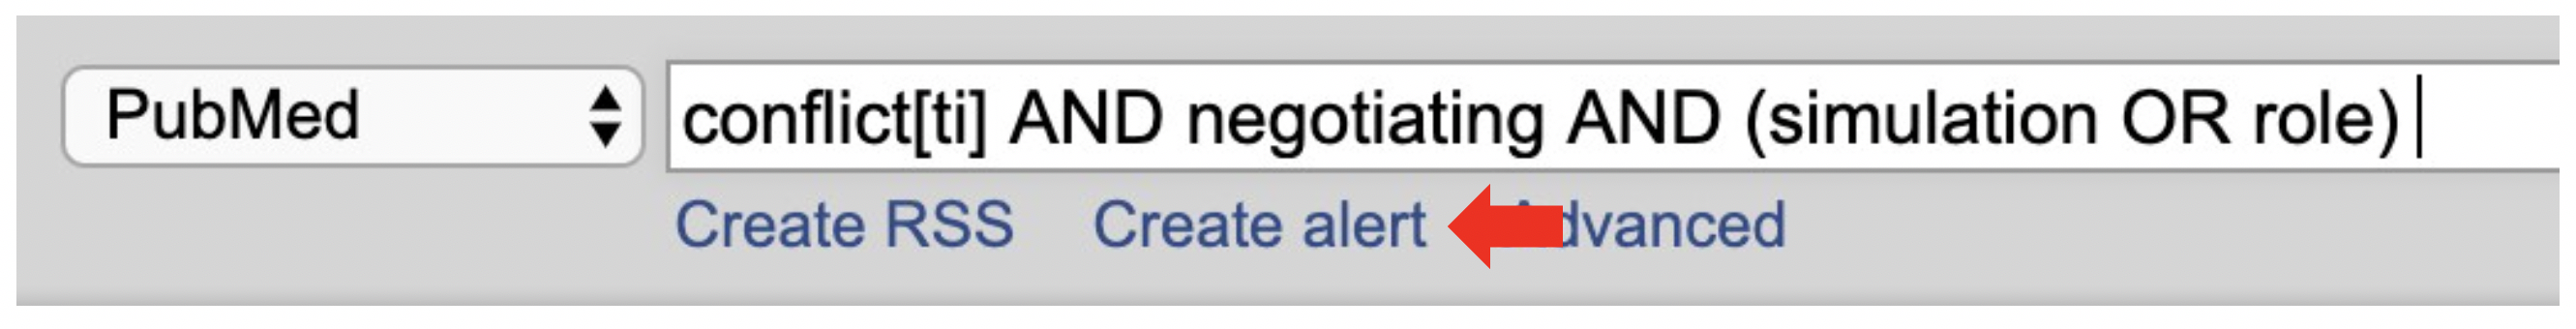 Create alert in PubMed